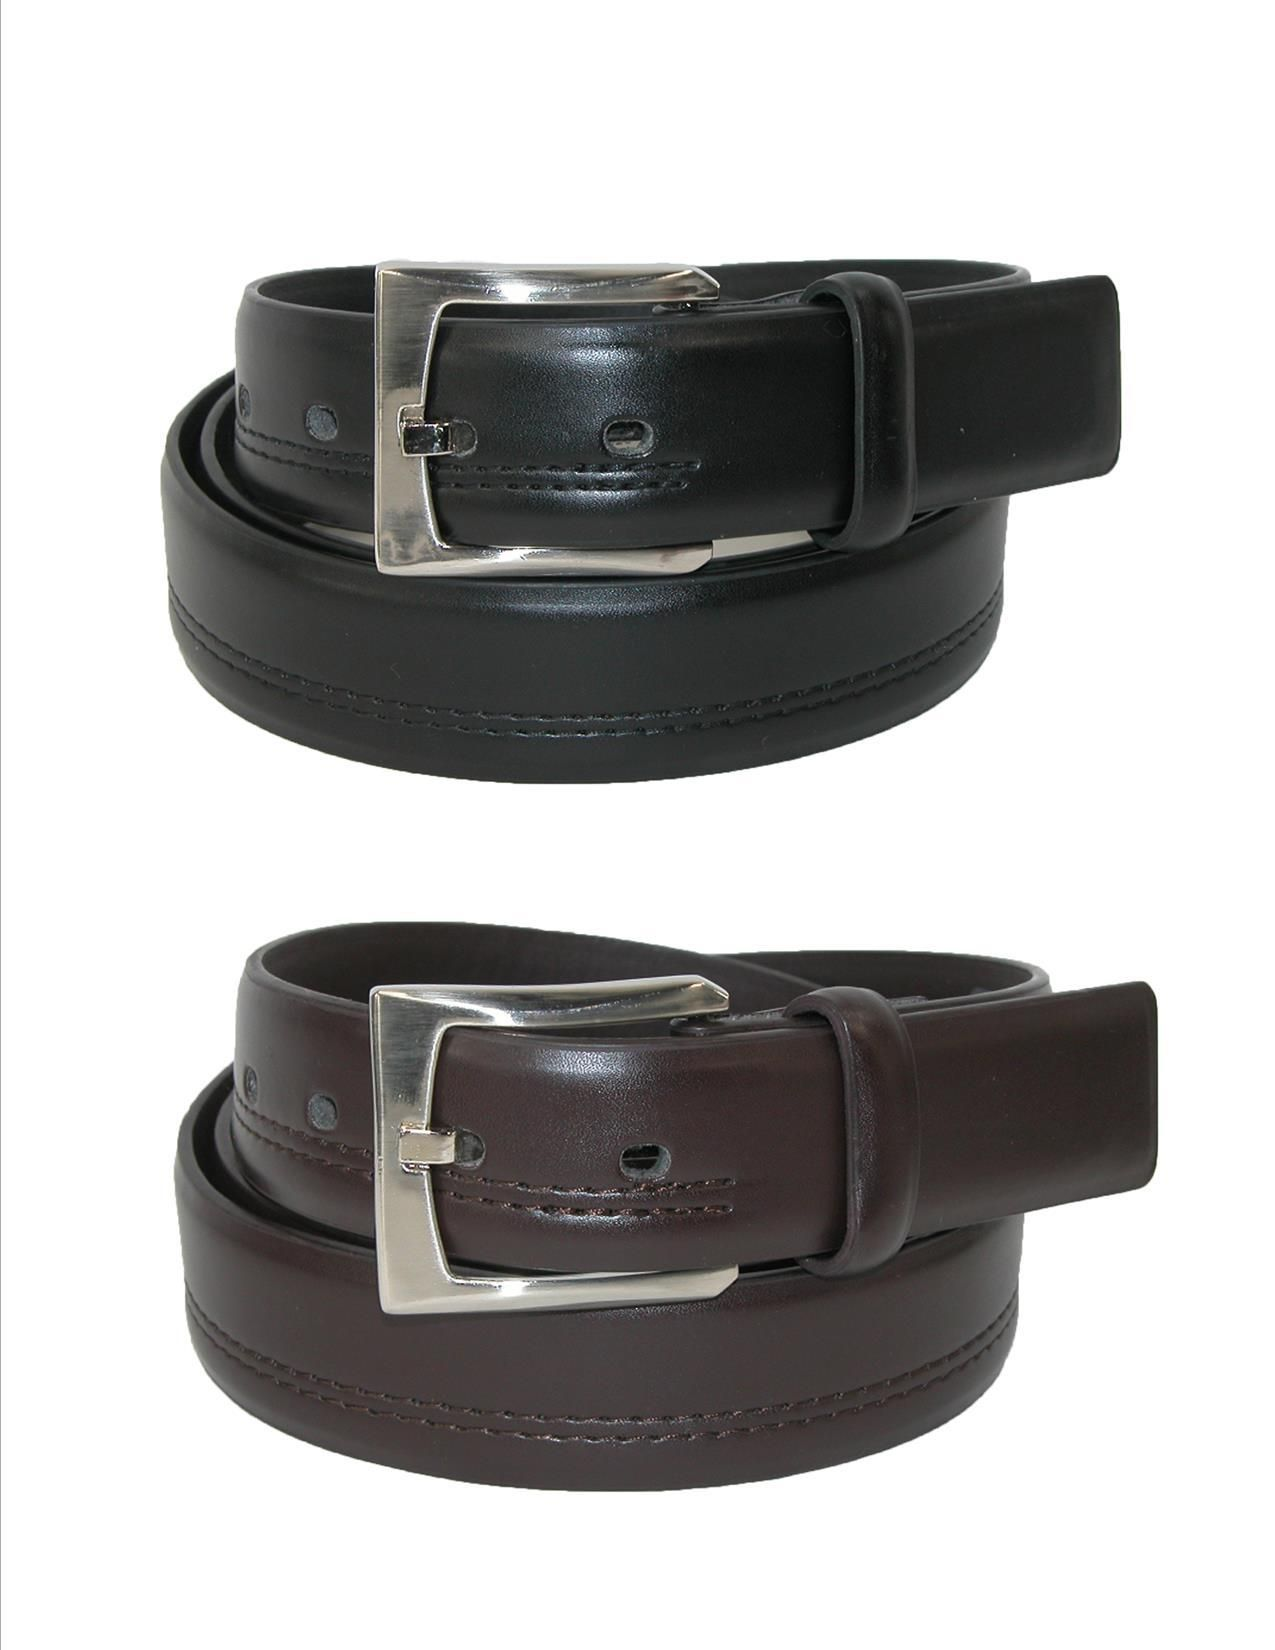 New Aquarius Men/'s Elastic Stretch Belt with Covered Buckle Big /& Tall